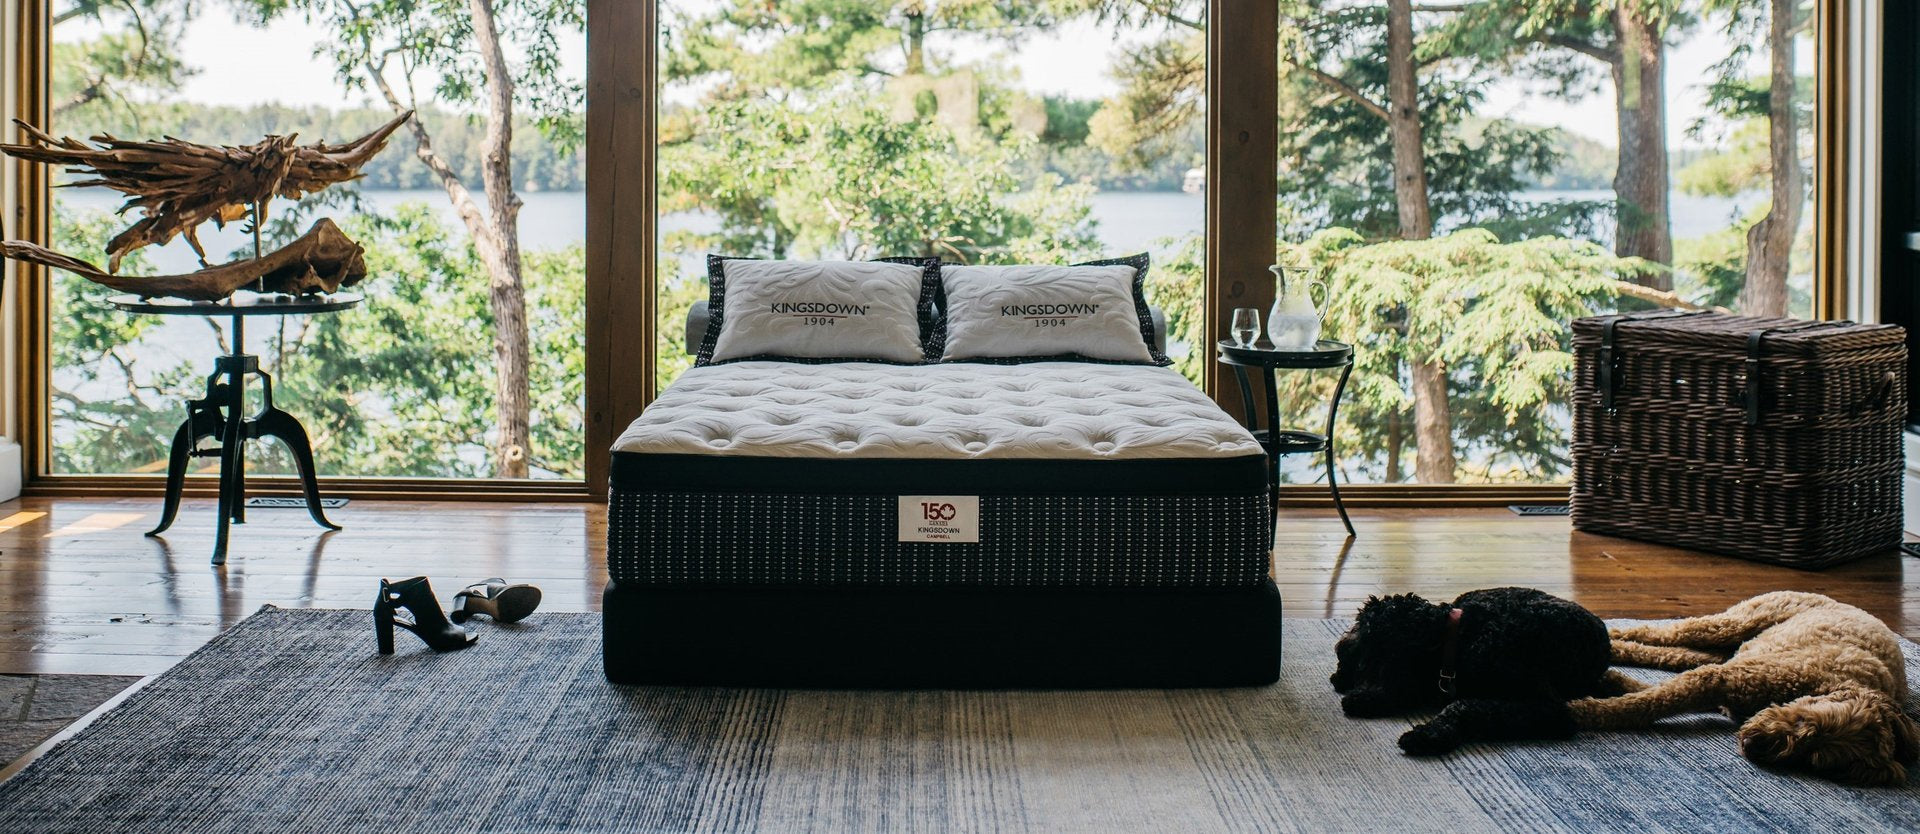 We are now an Authorized Tempur-Pedic® Product Dealer